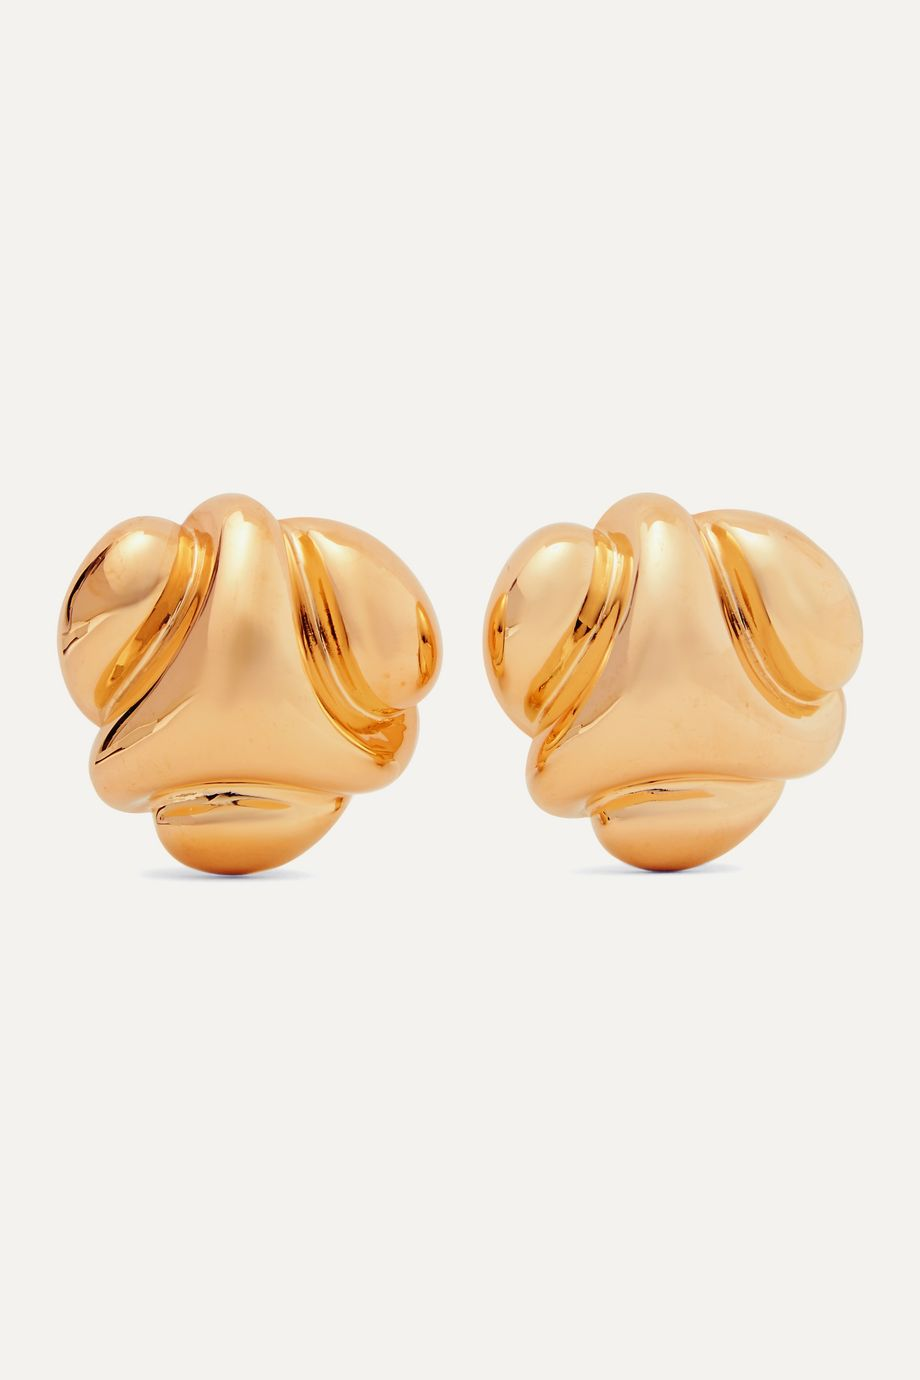 Kenneth Jay Lane Gold-tone clip earrings